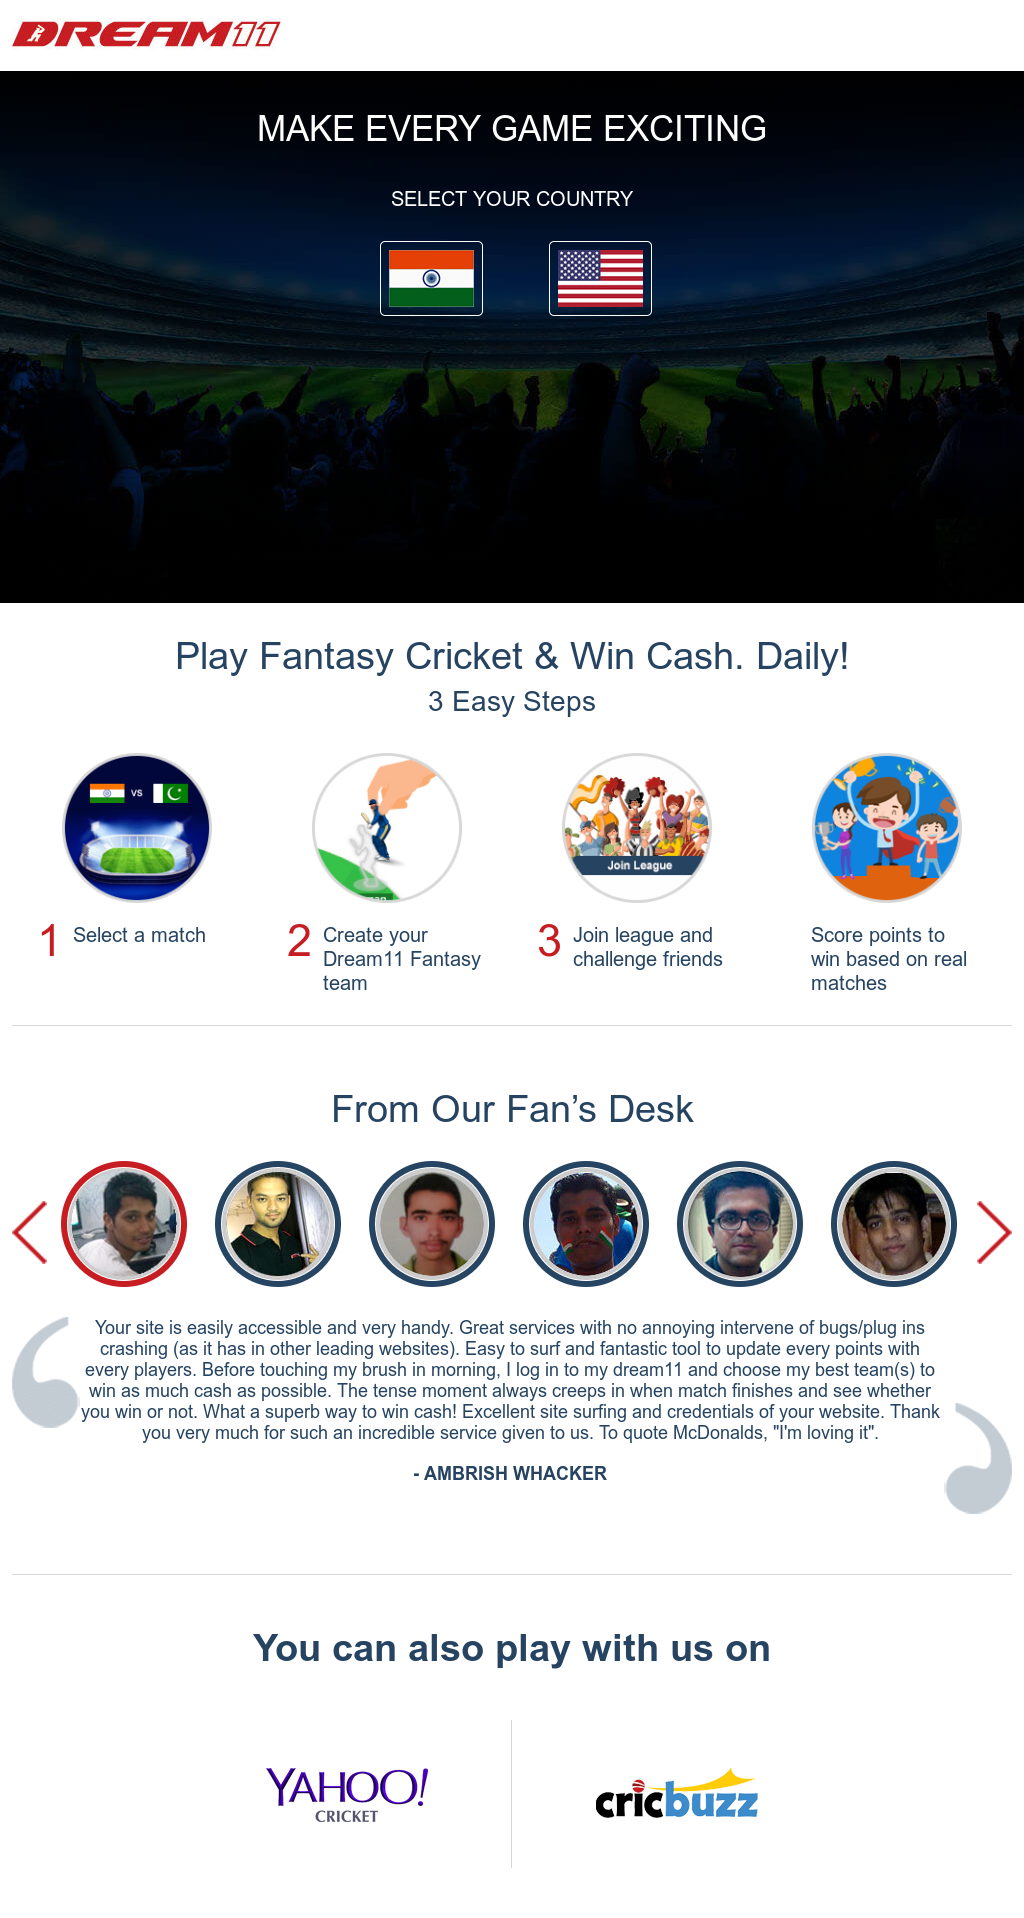 Dream11 Competitors, Revenue and Employees - Owler Company Profile